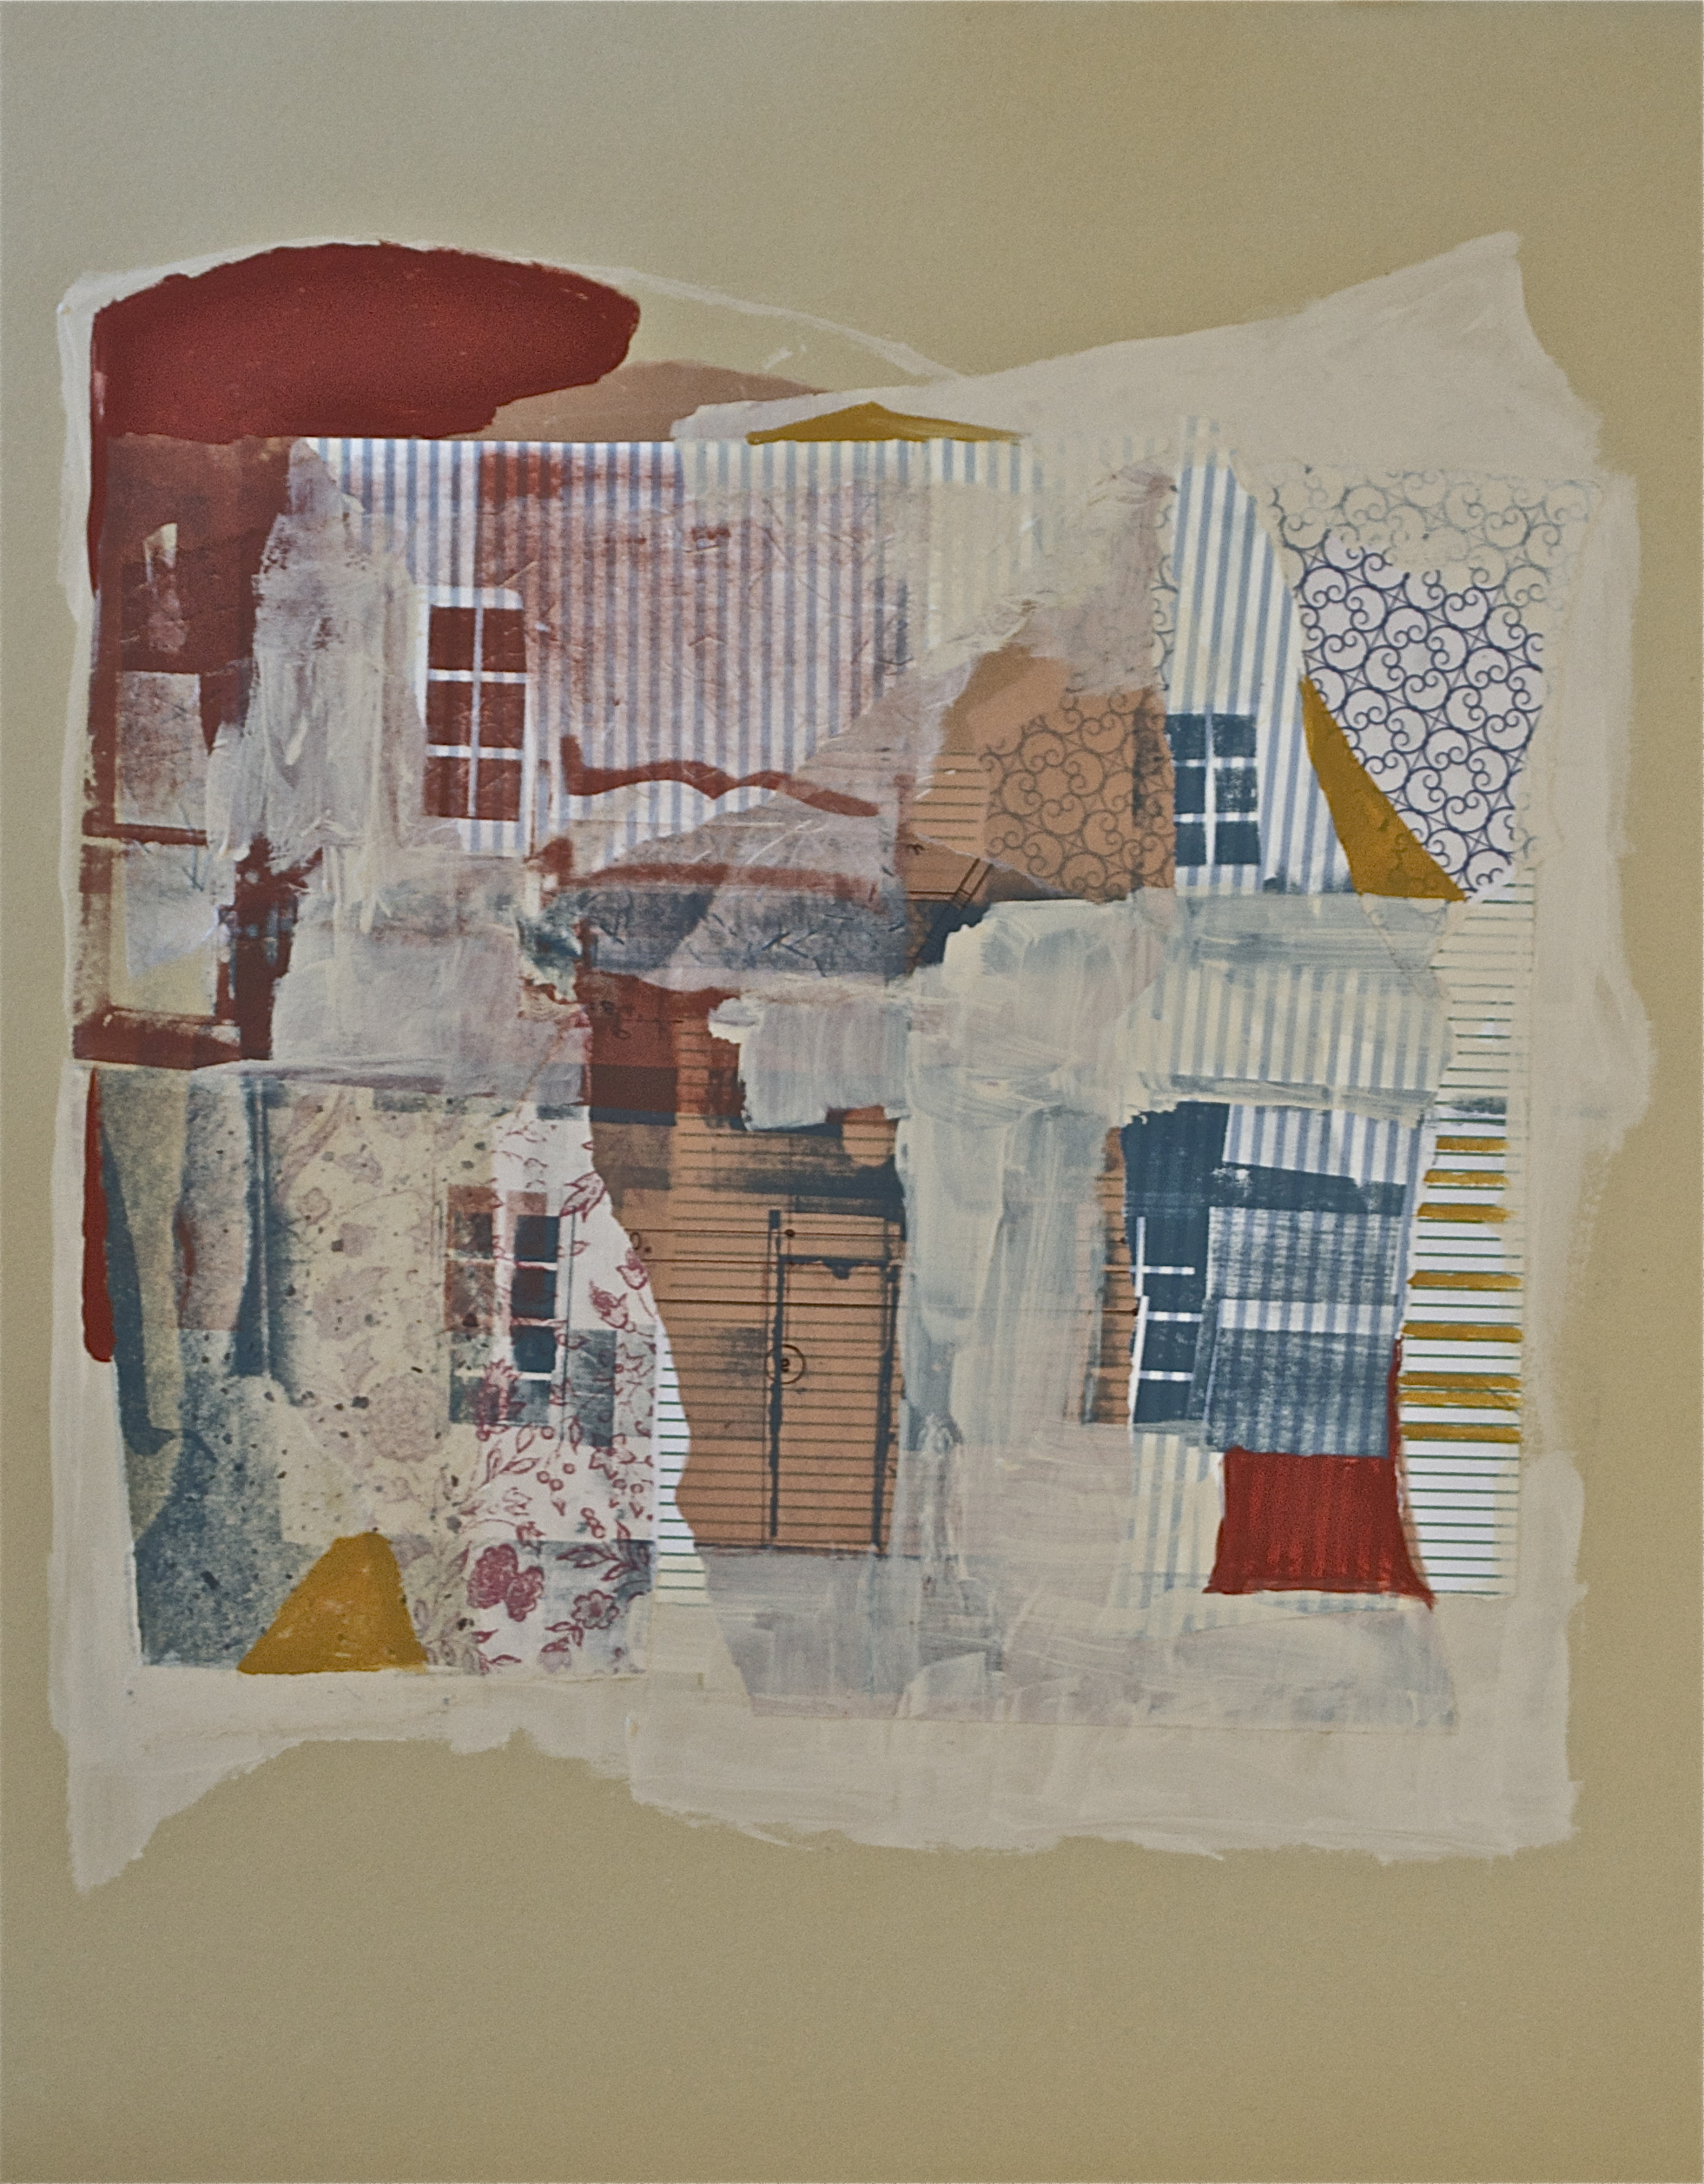 "Pieces of a broken house,  acrylic and serigraphy and chine-coll é  on paper, 20"" H x 16"" W, 2012"